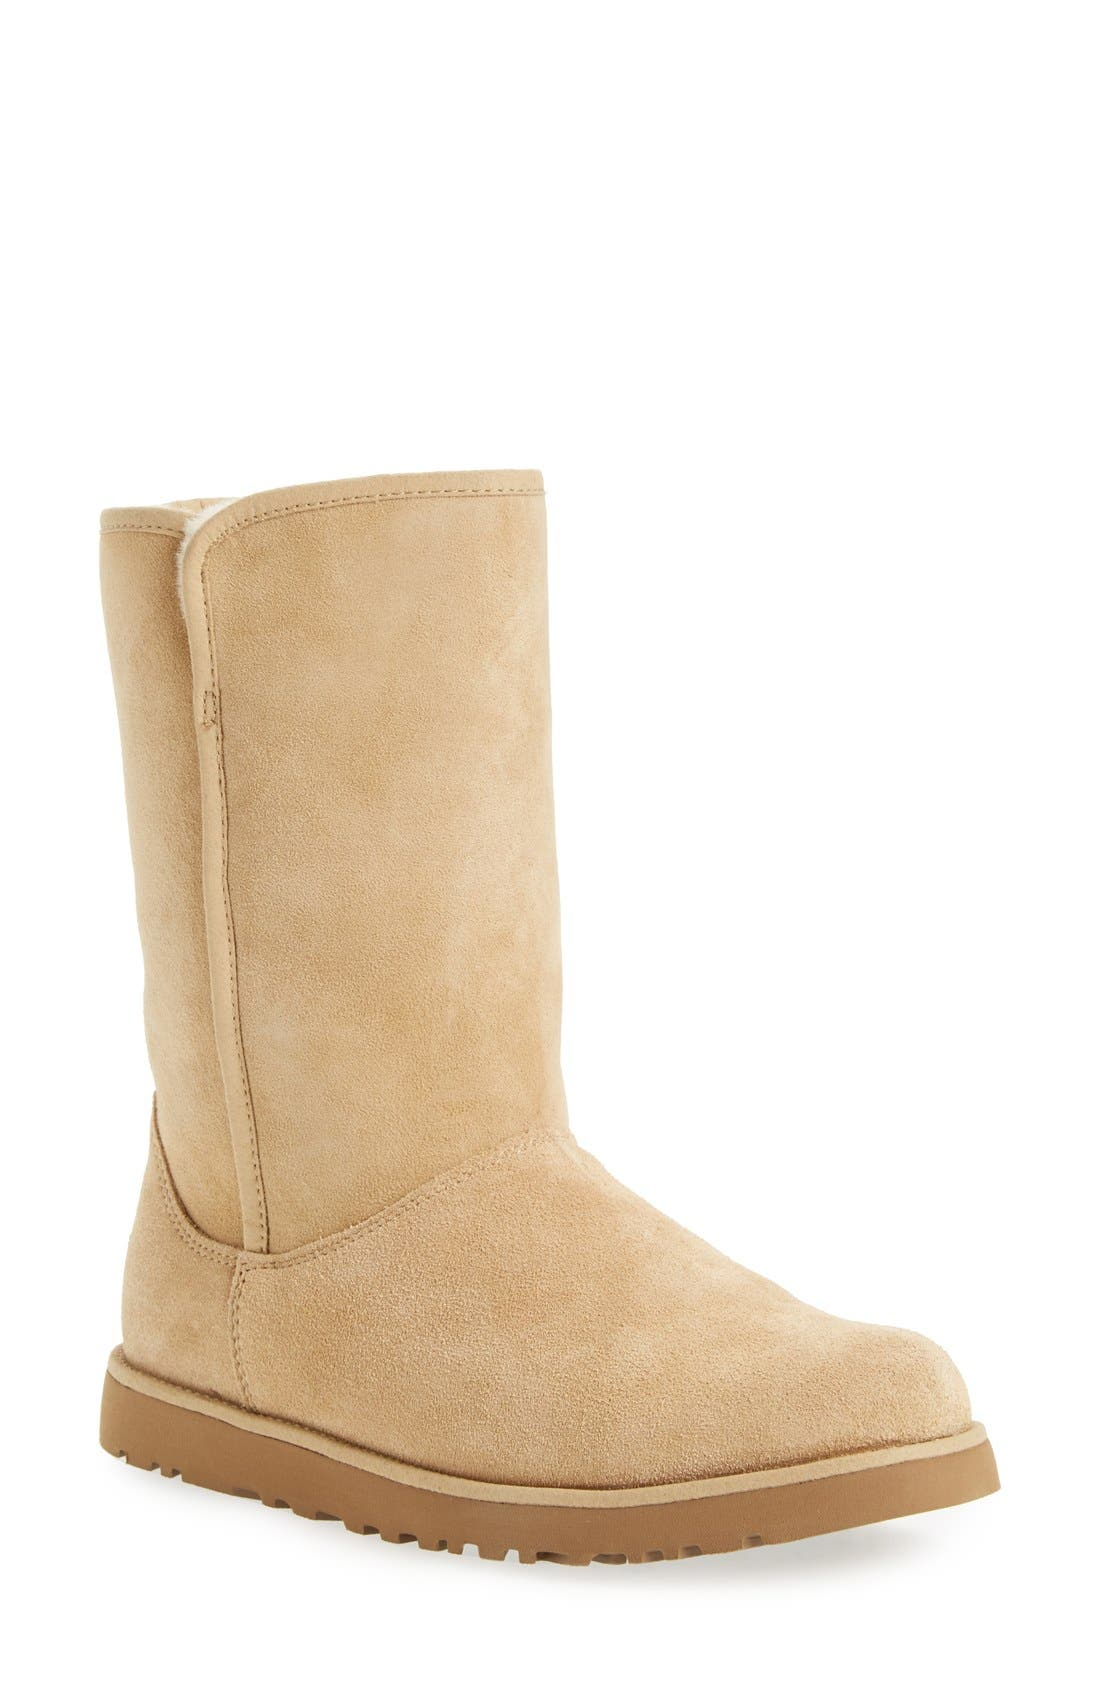 UGG Shoes for Women | Poshmark day priority shipping · Posh Protect · Fashion at 70% offBrands: Kids' Brands, Men's Brands, People Also Searched, Women's Brands and more.